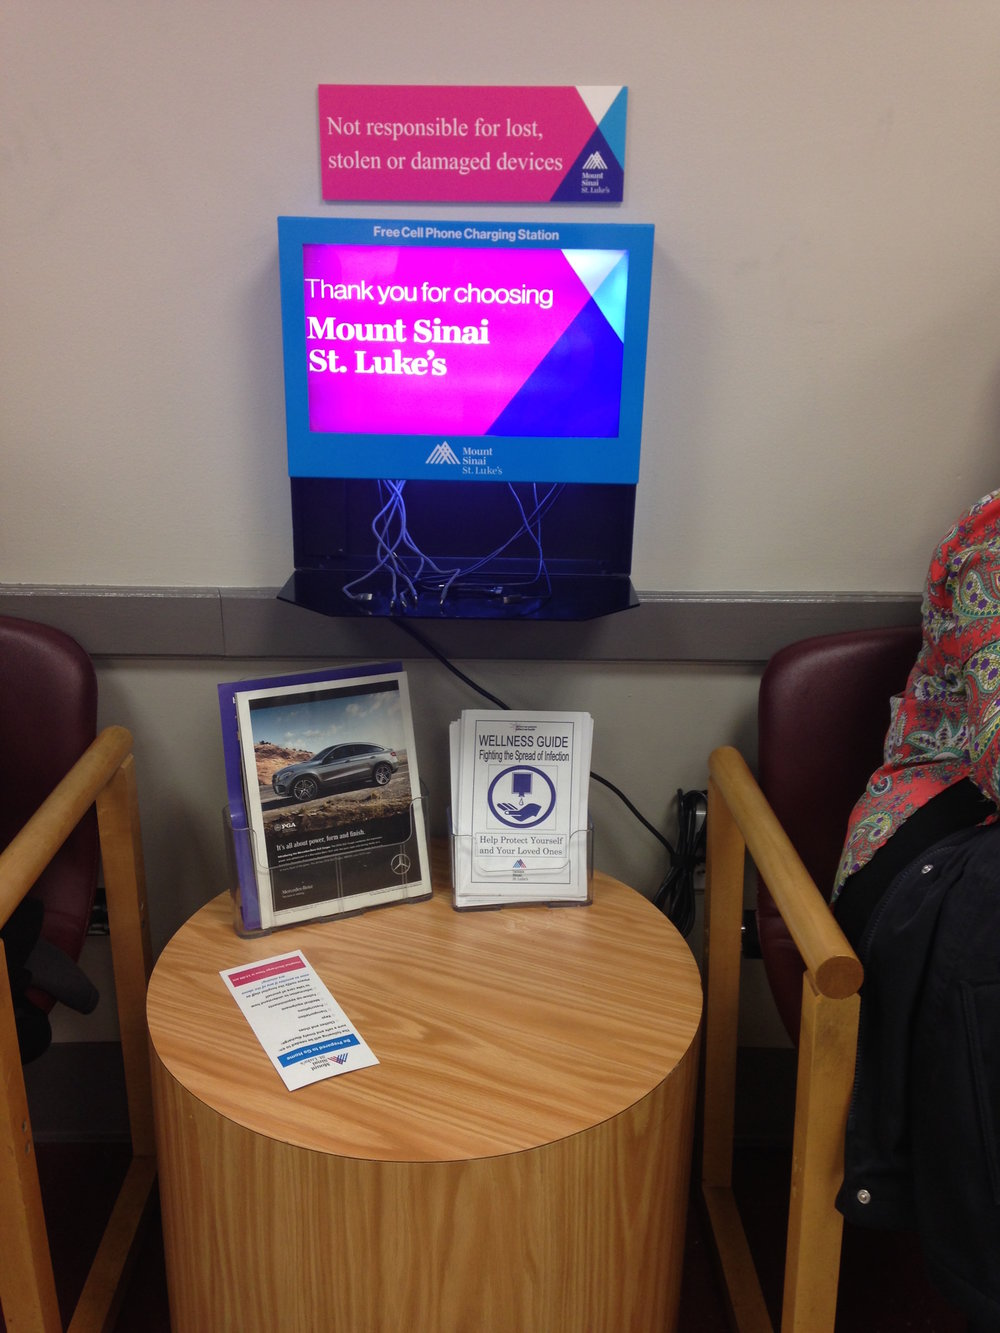 charging-station-in hospital-waiting-room.jpg